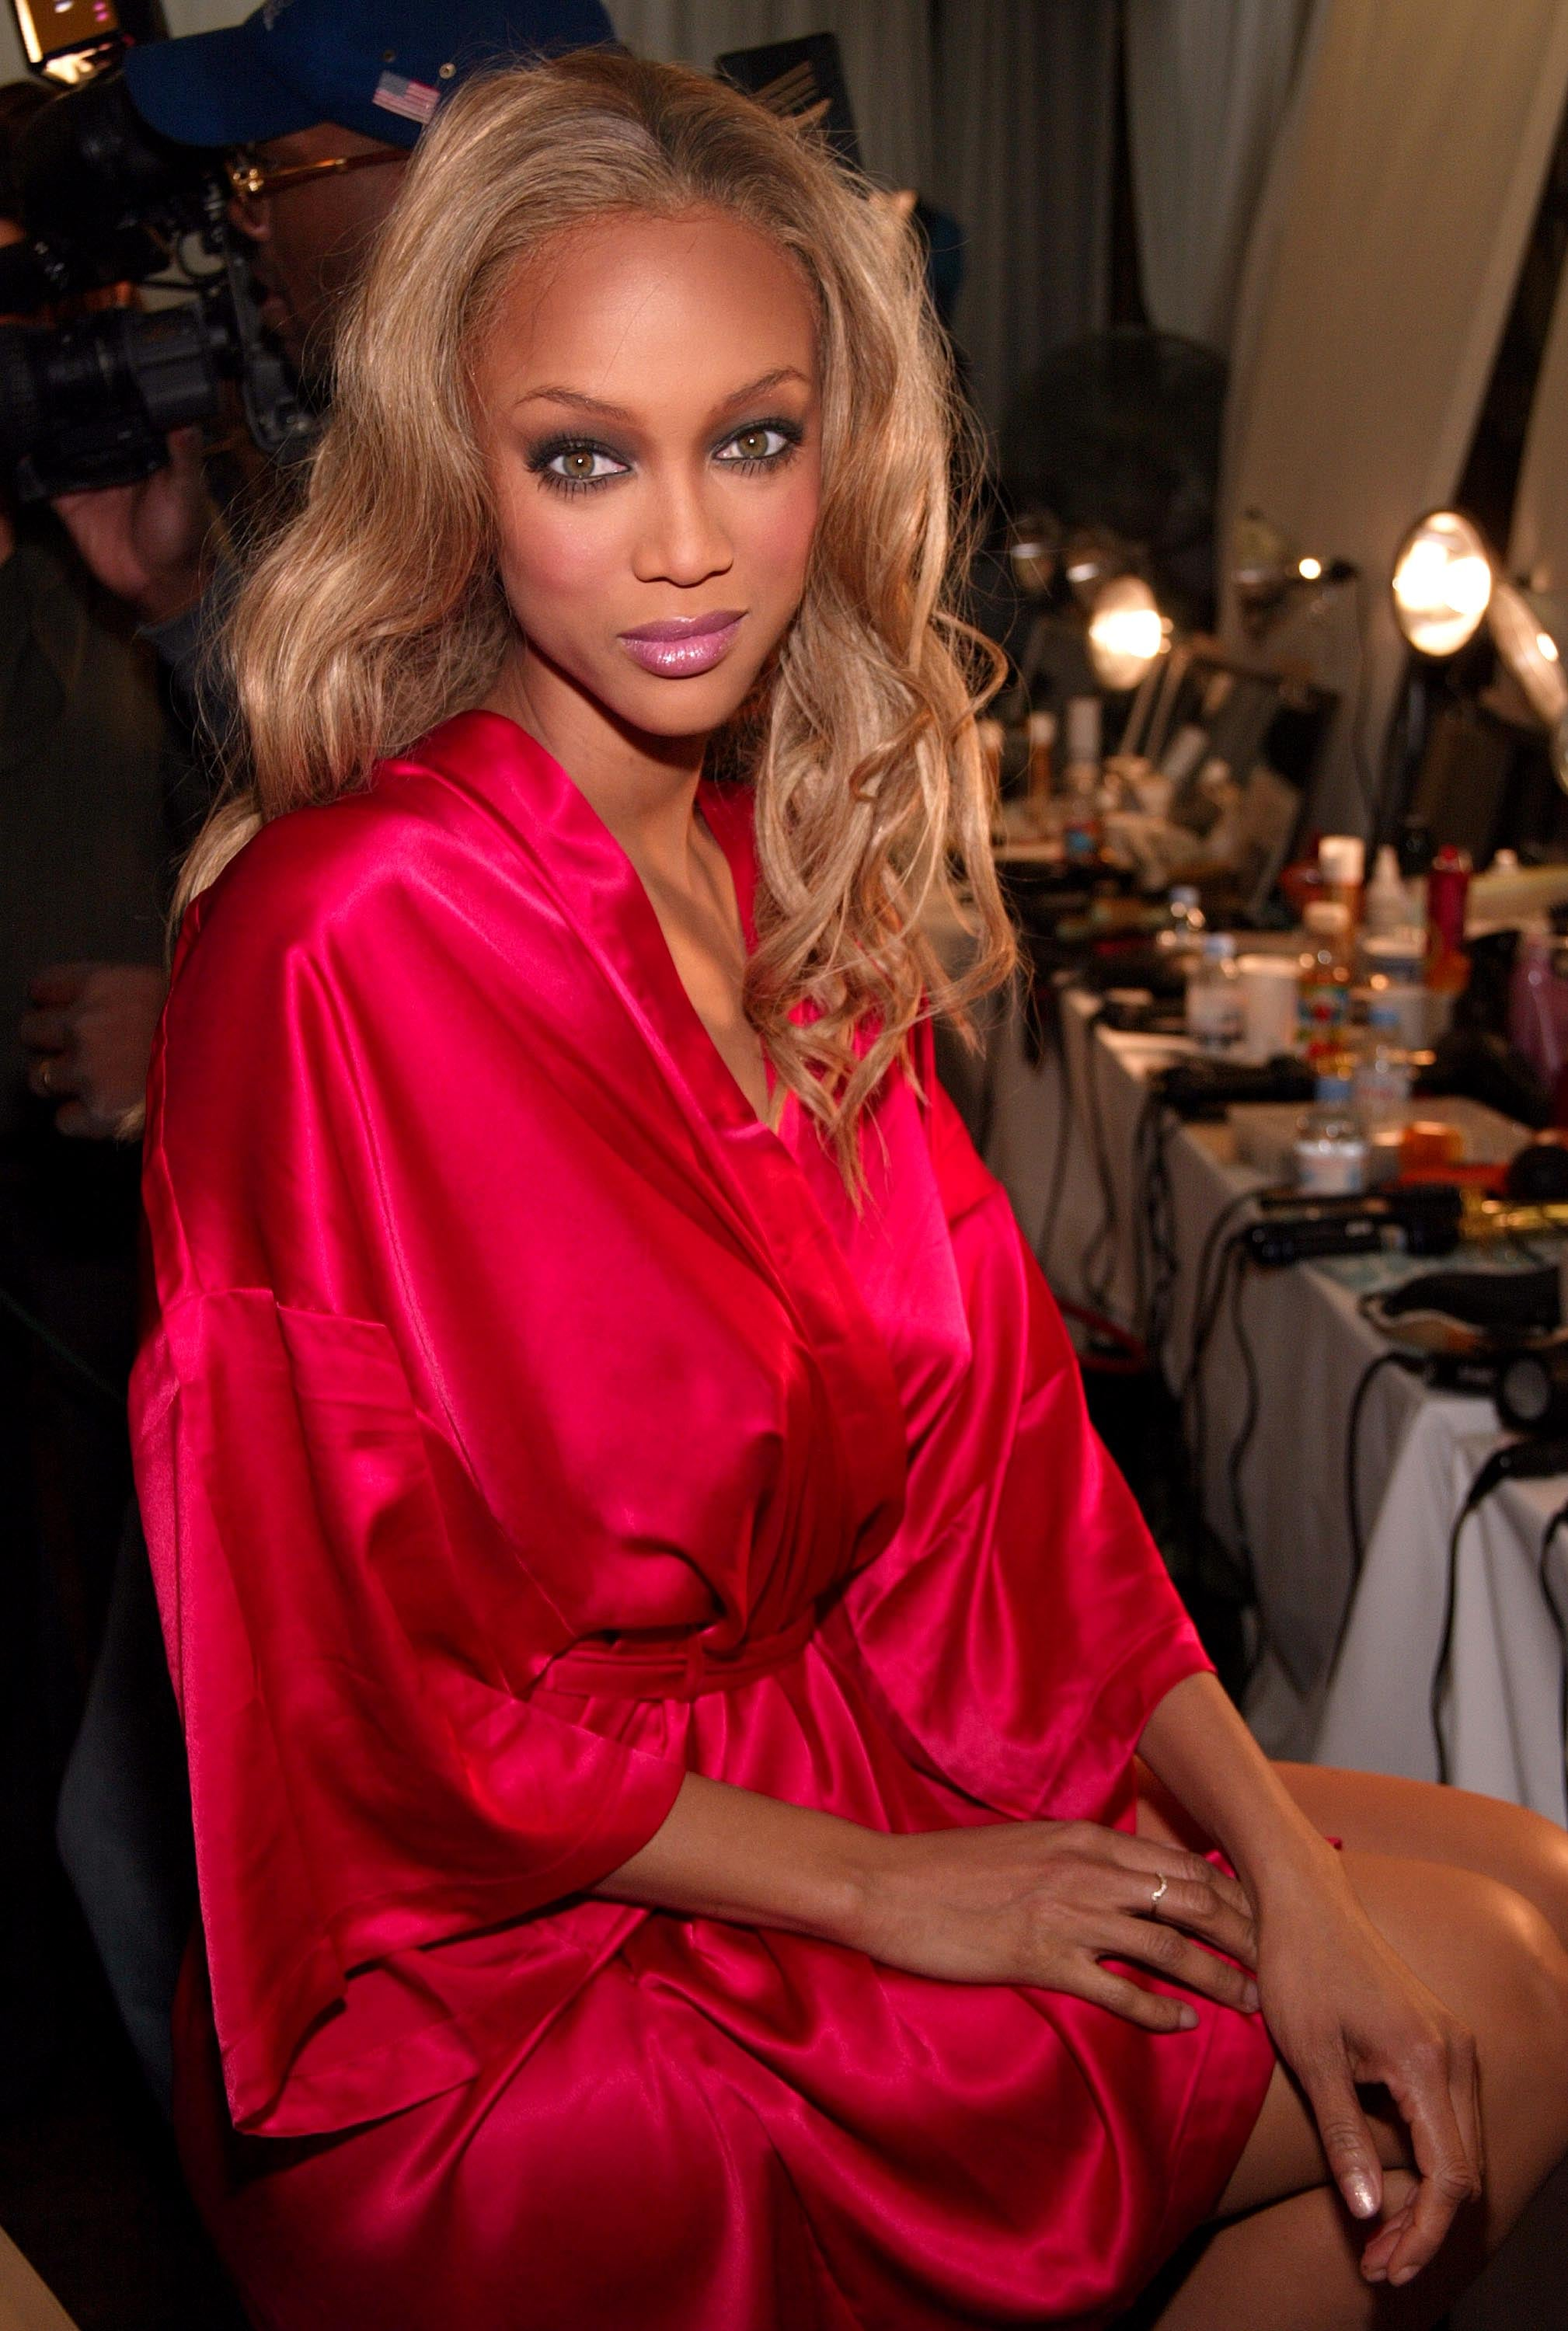 NEW YORK - NOVEMBER 13:  Supermodel Tyra Banks is photographed backstage at the Victoria's Secret Fashion Show at the 69th Regiment Armory November 13, 2003 in New York City. The fashion show will air November 19, 2003 on CBS.  (Photo by Evan Agostini/Getty Images)